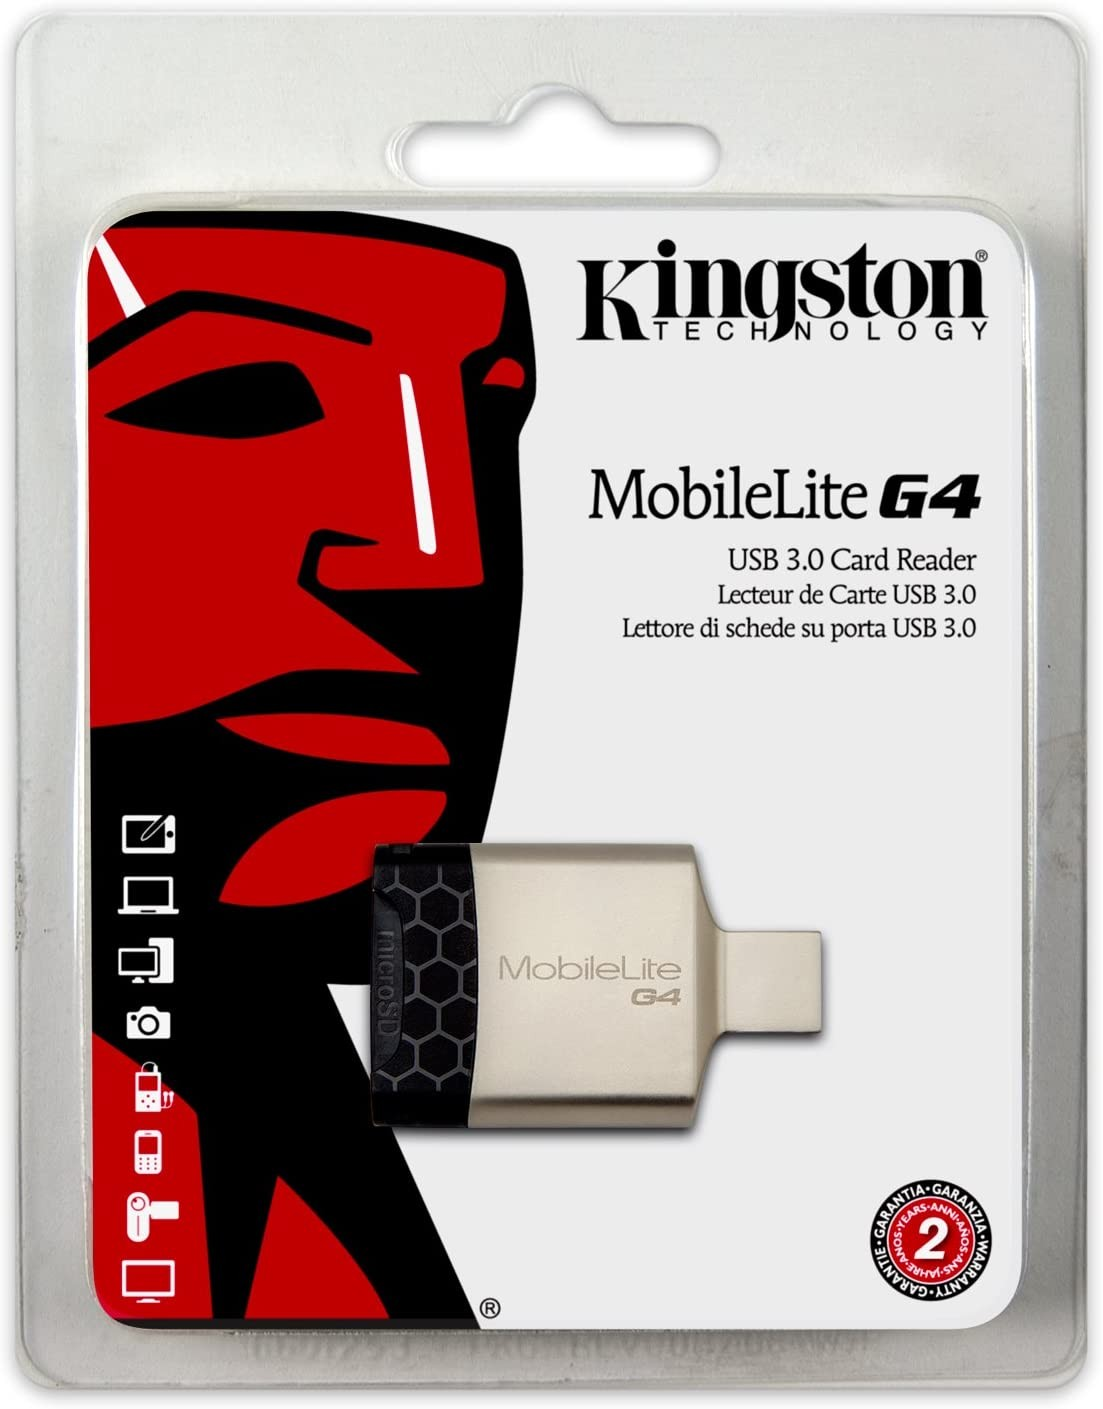 Kingston FCR-MLG4 USB 3.0 Card Reader